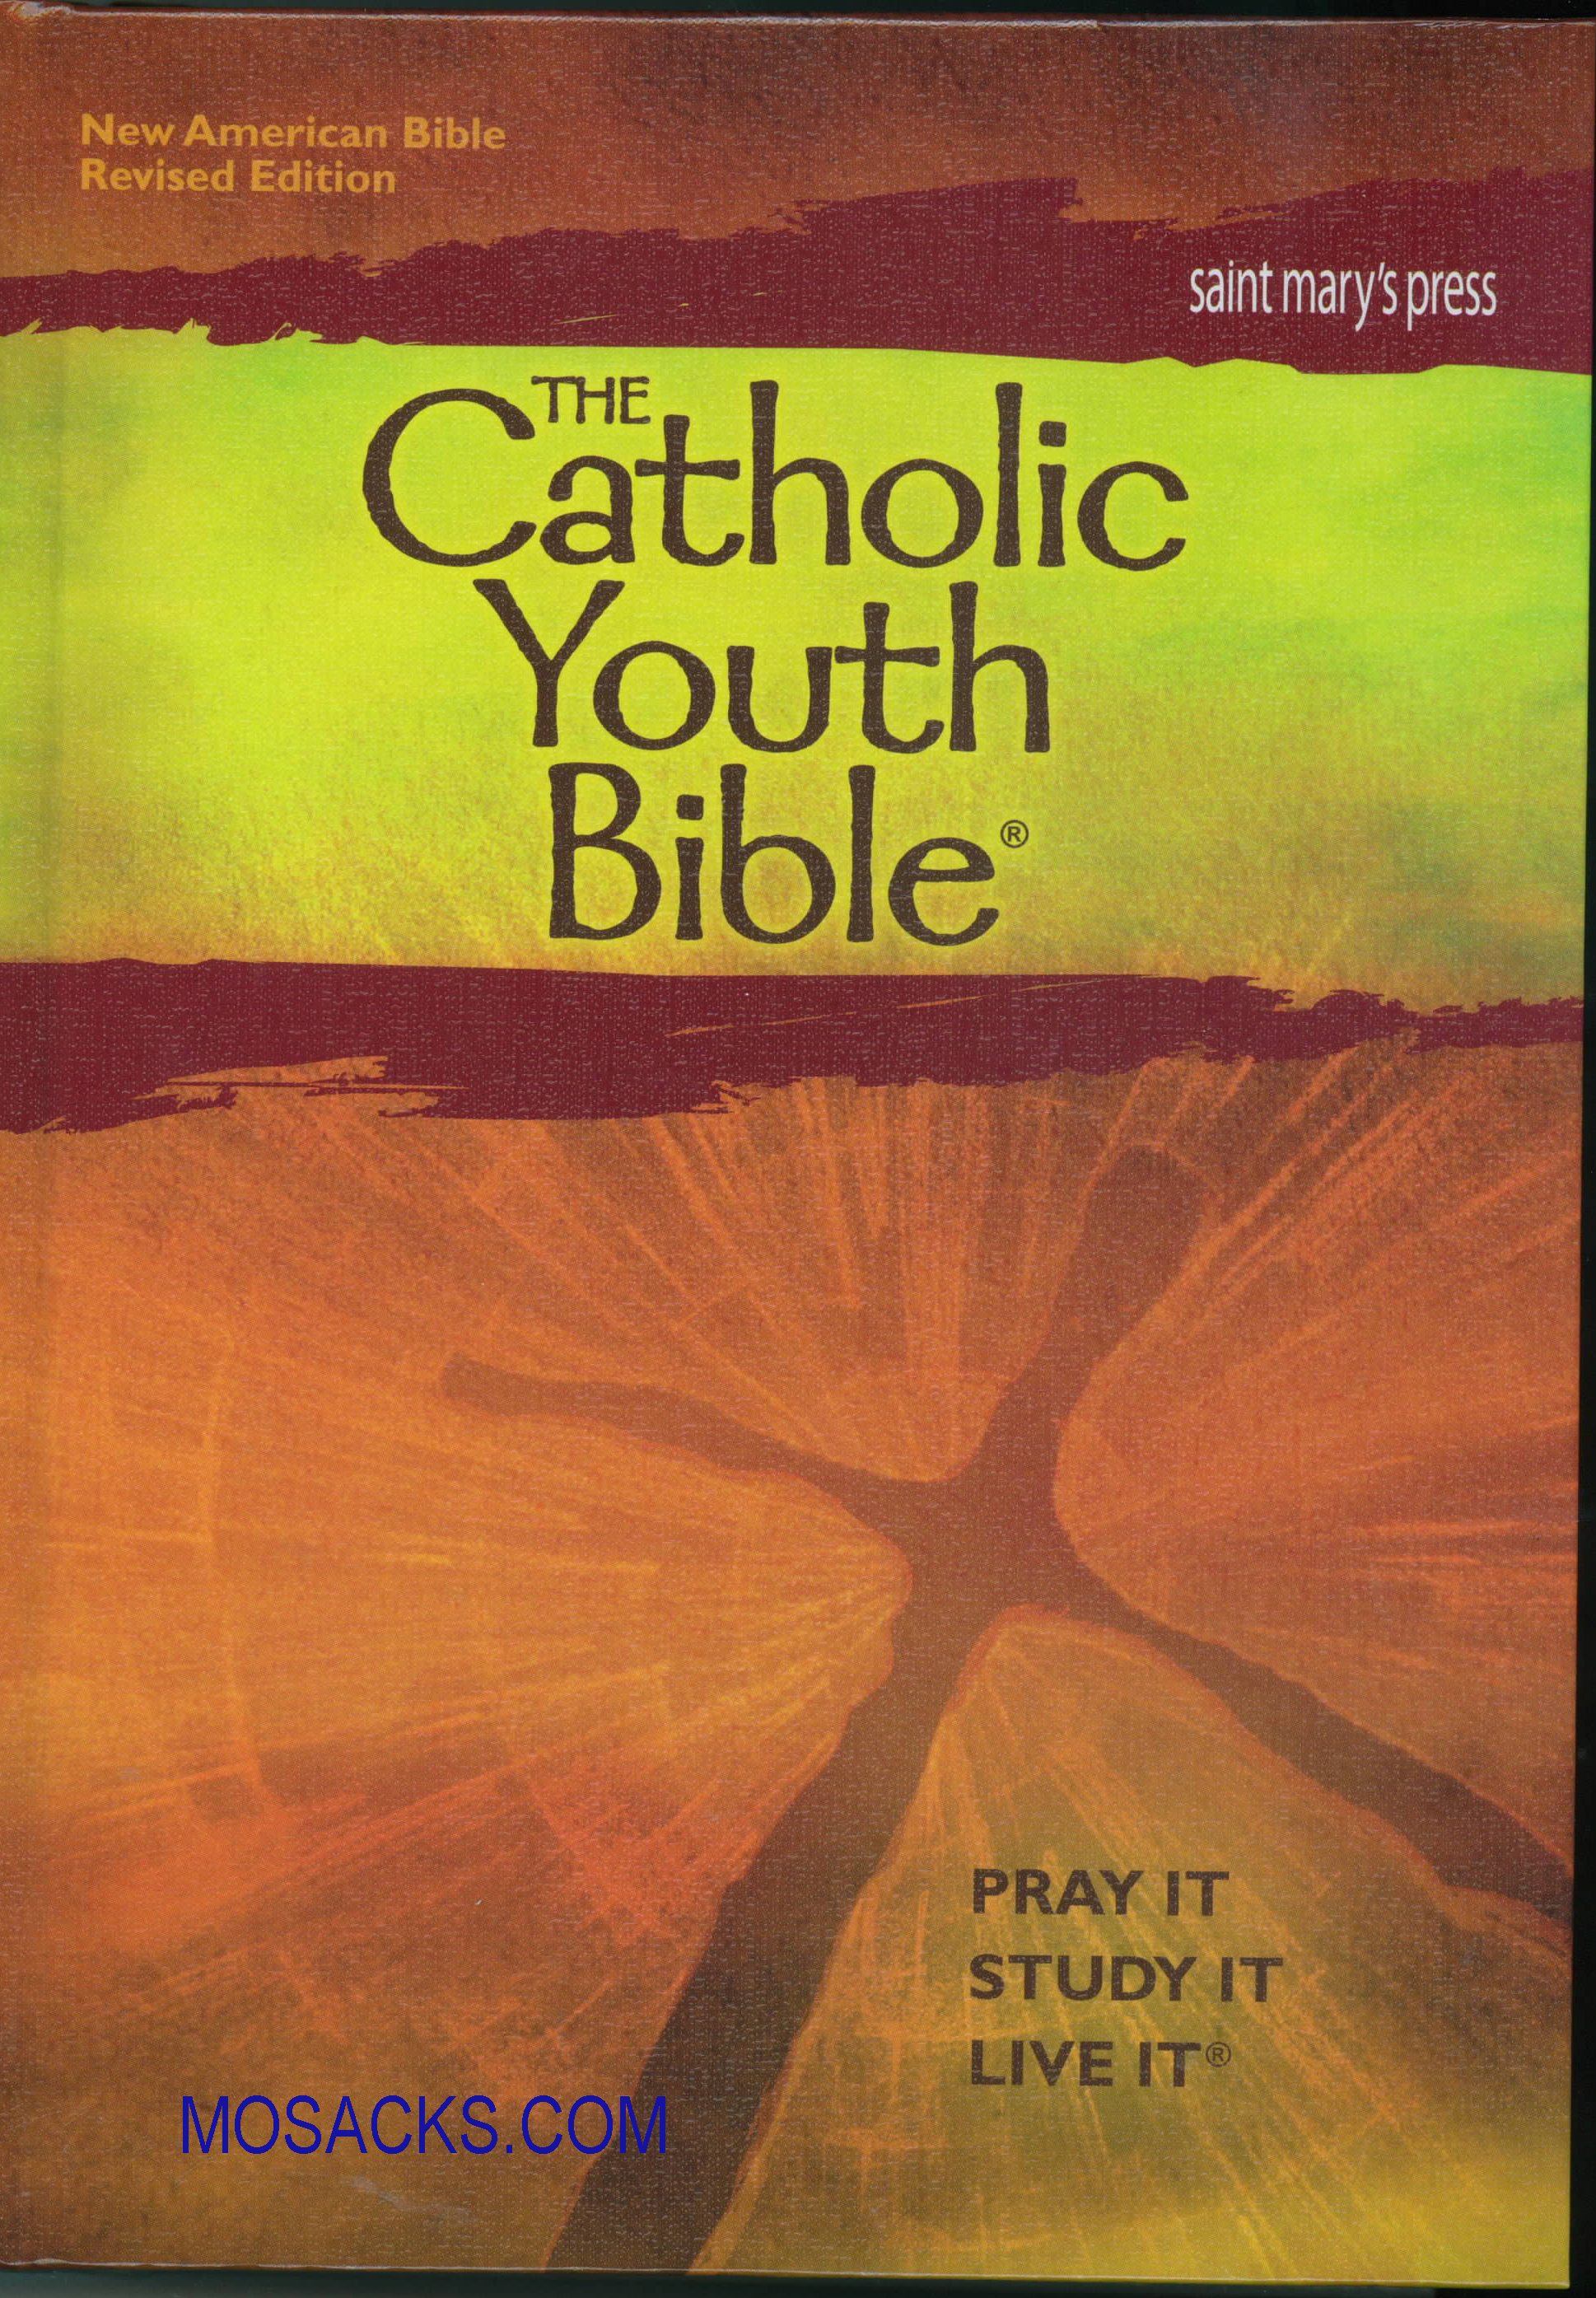 Catholic Youth Bible (NABRE) (Hardcover) 69-9781599821429